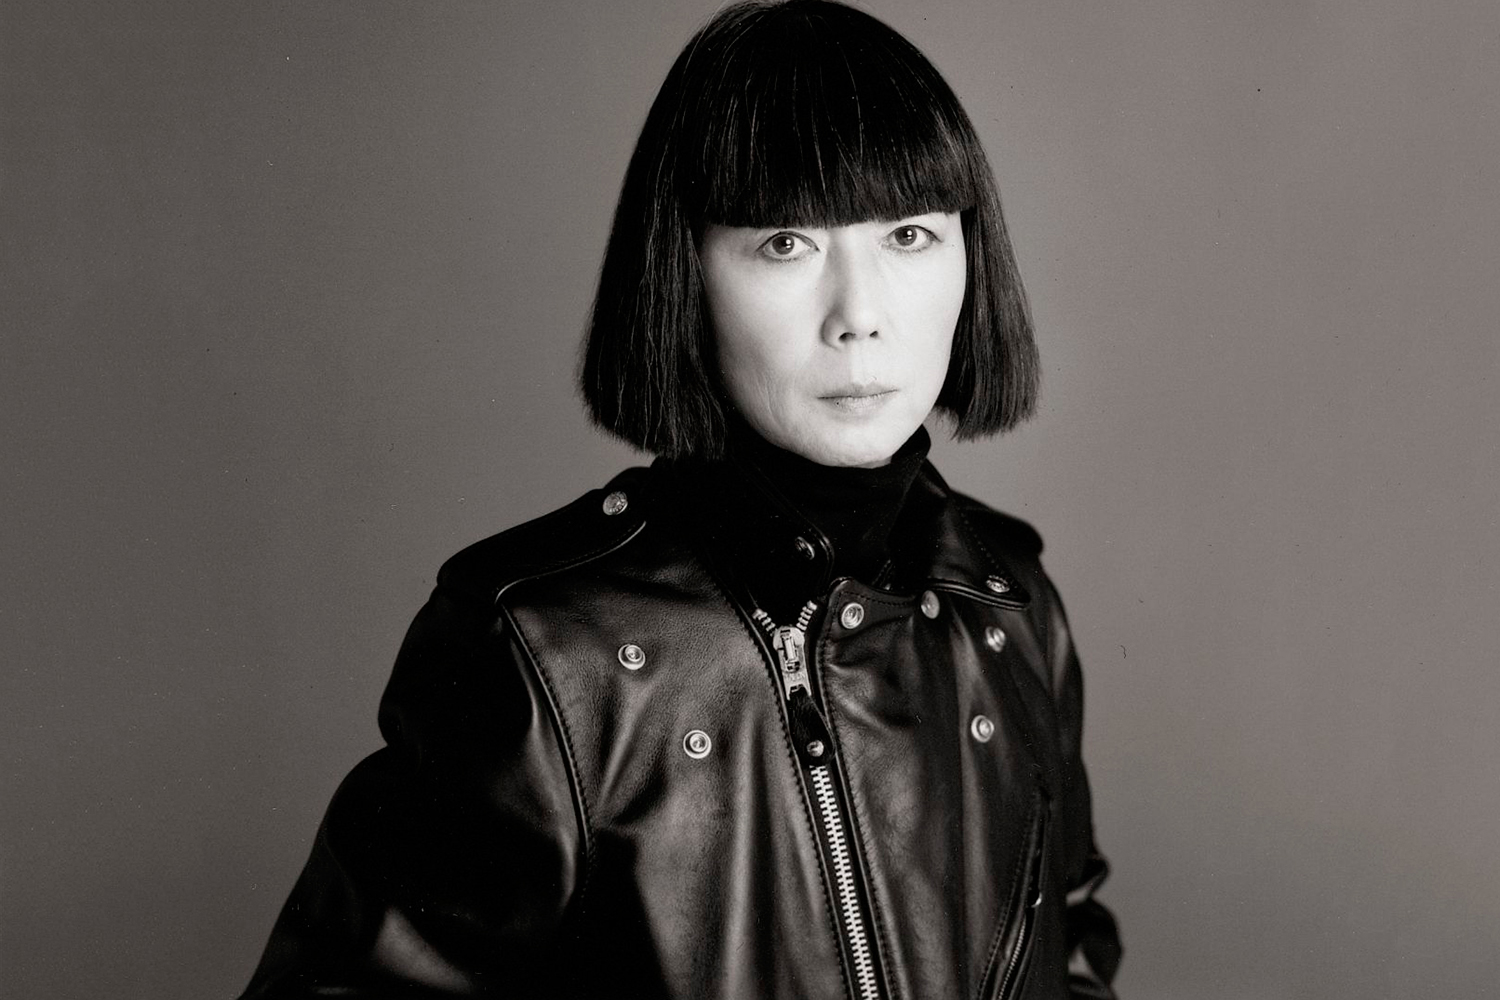 Rei Kawakubo Opens up About the History and Business of COMME des GARÇONS